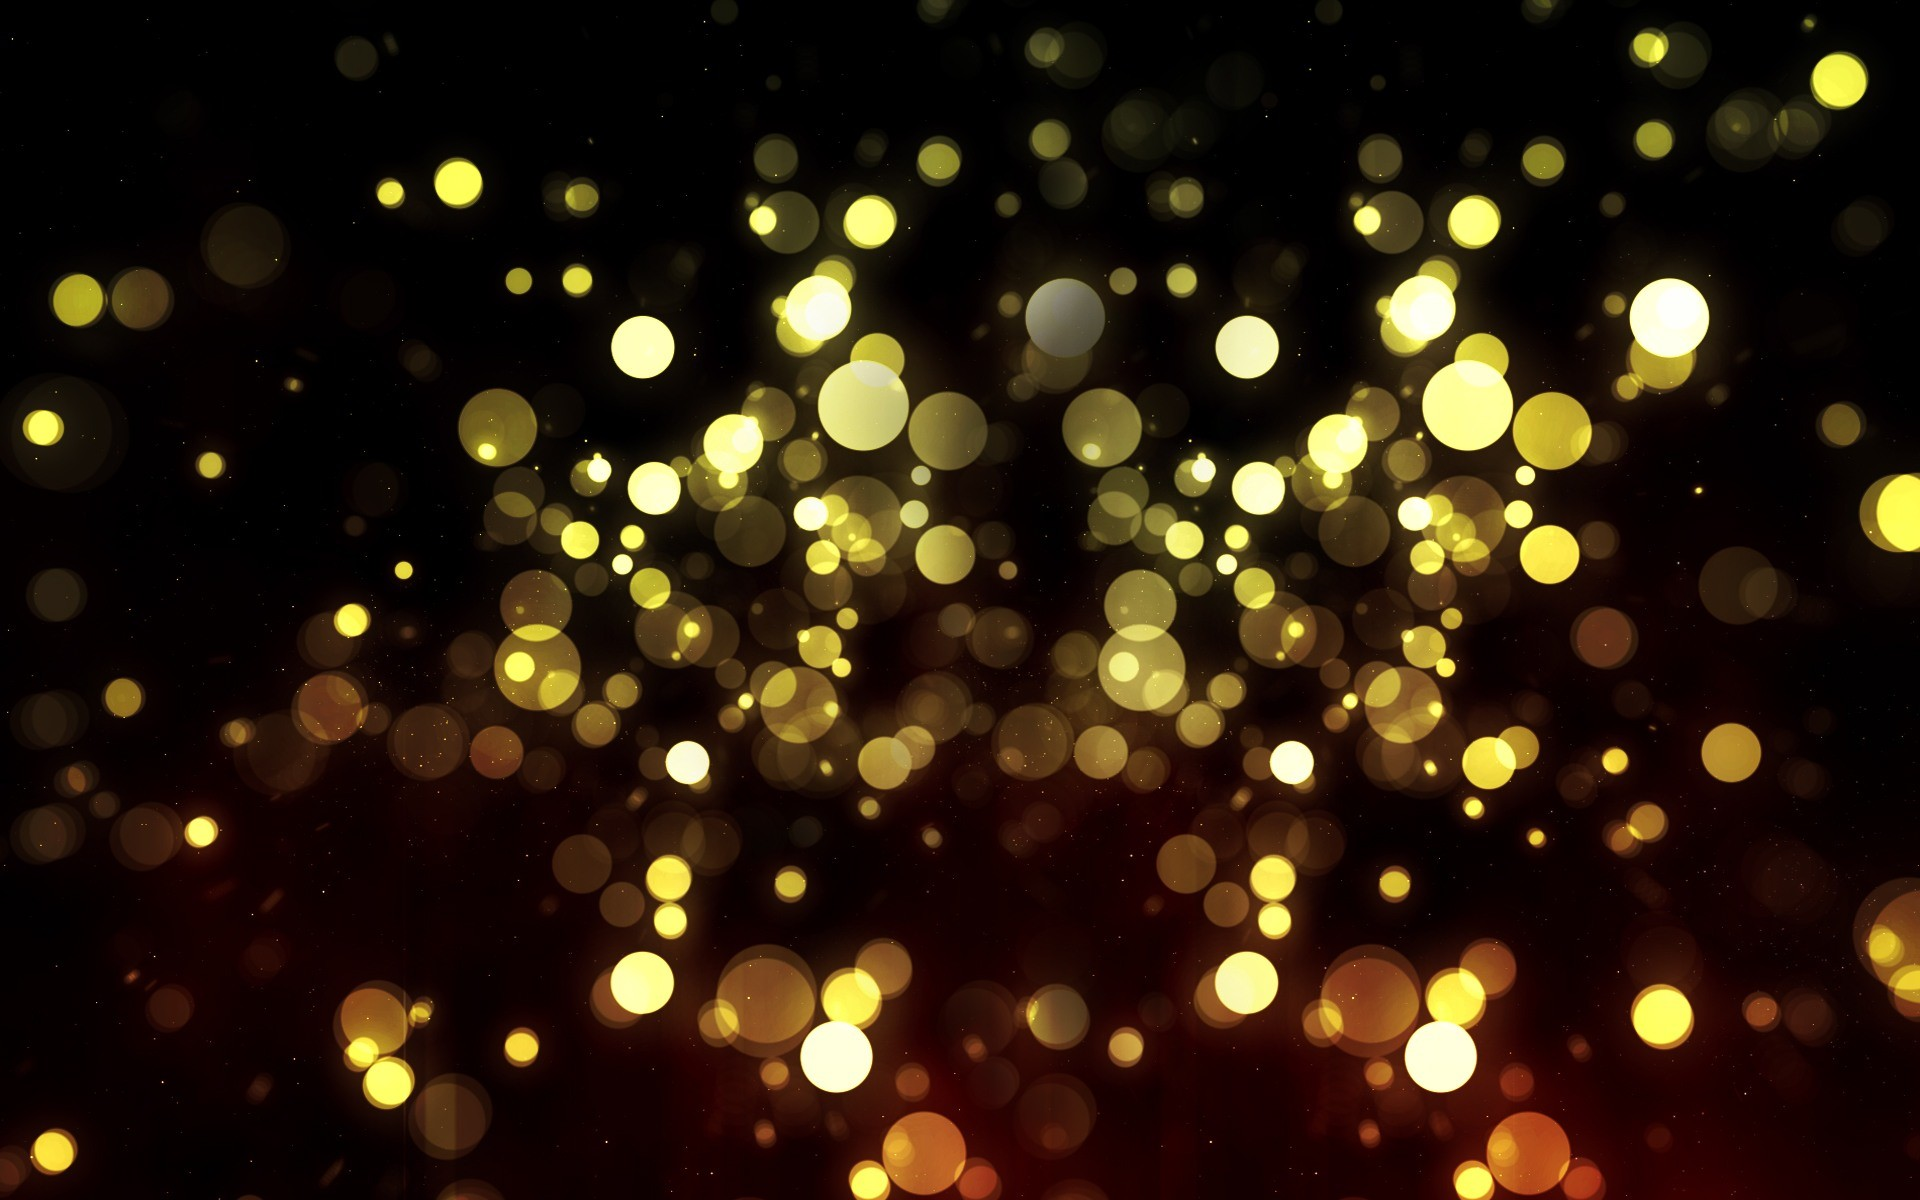 Black And Gold wallpaper 153498